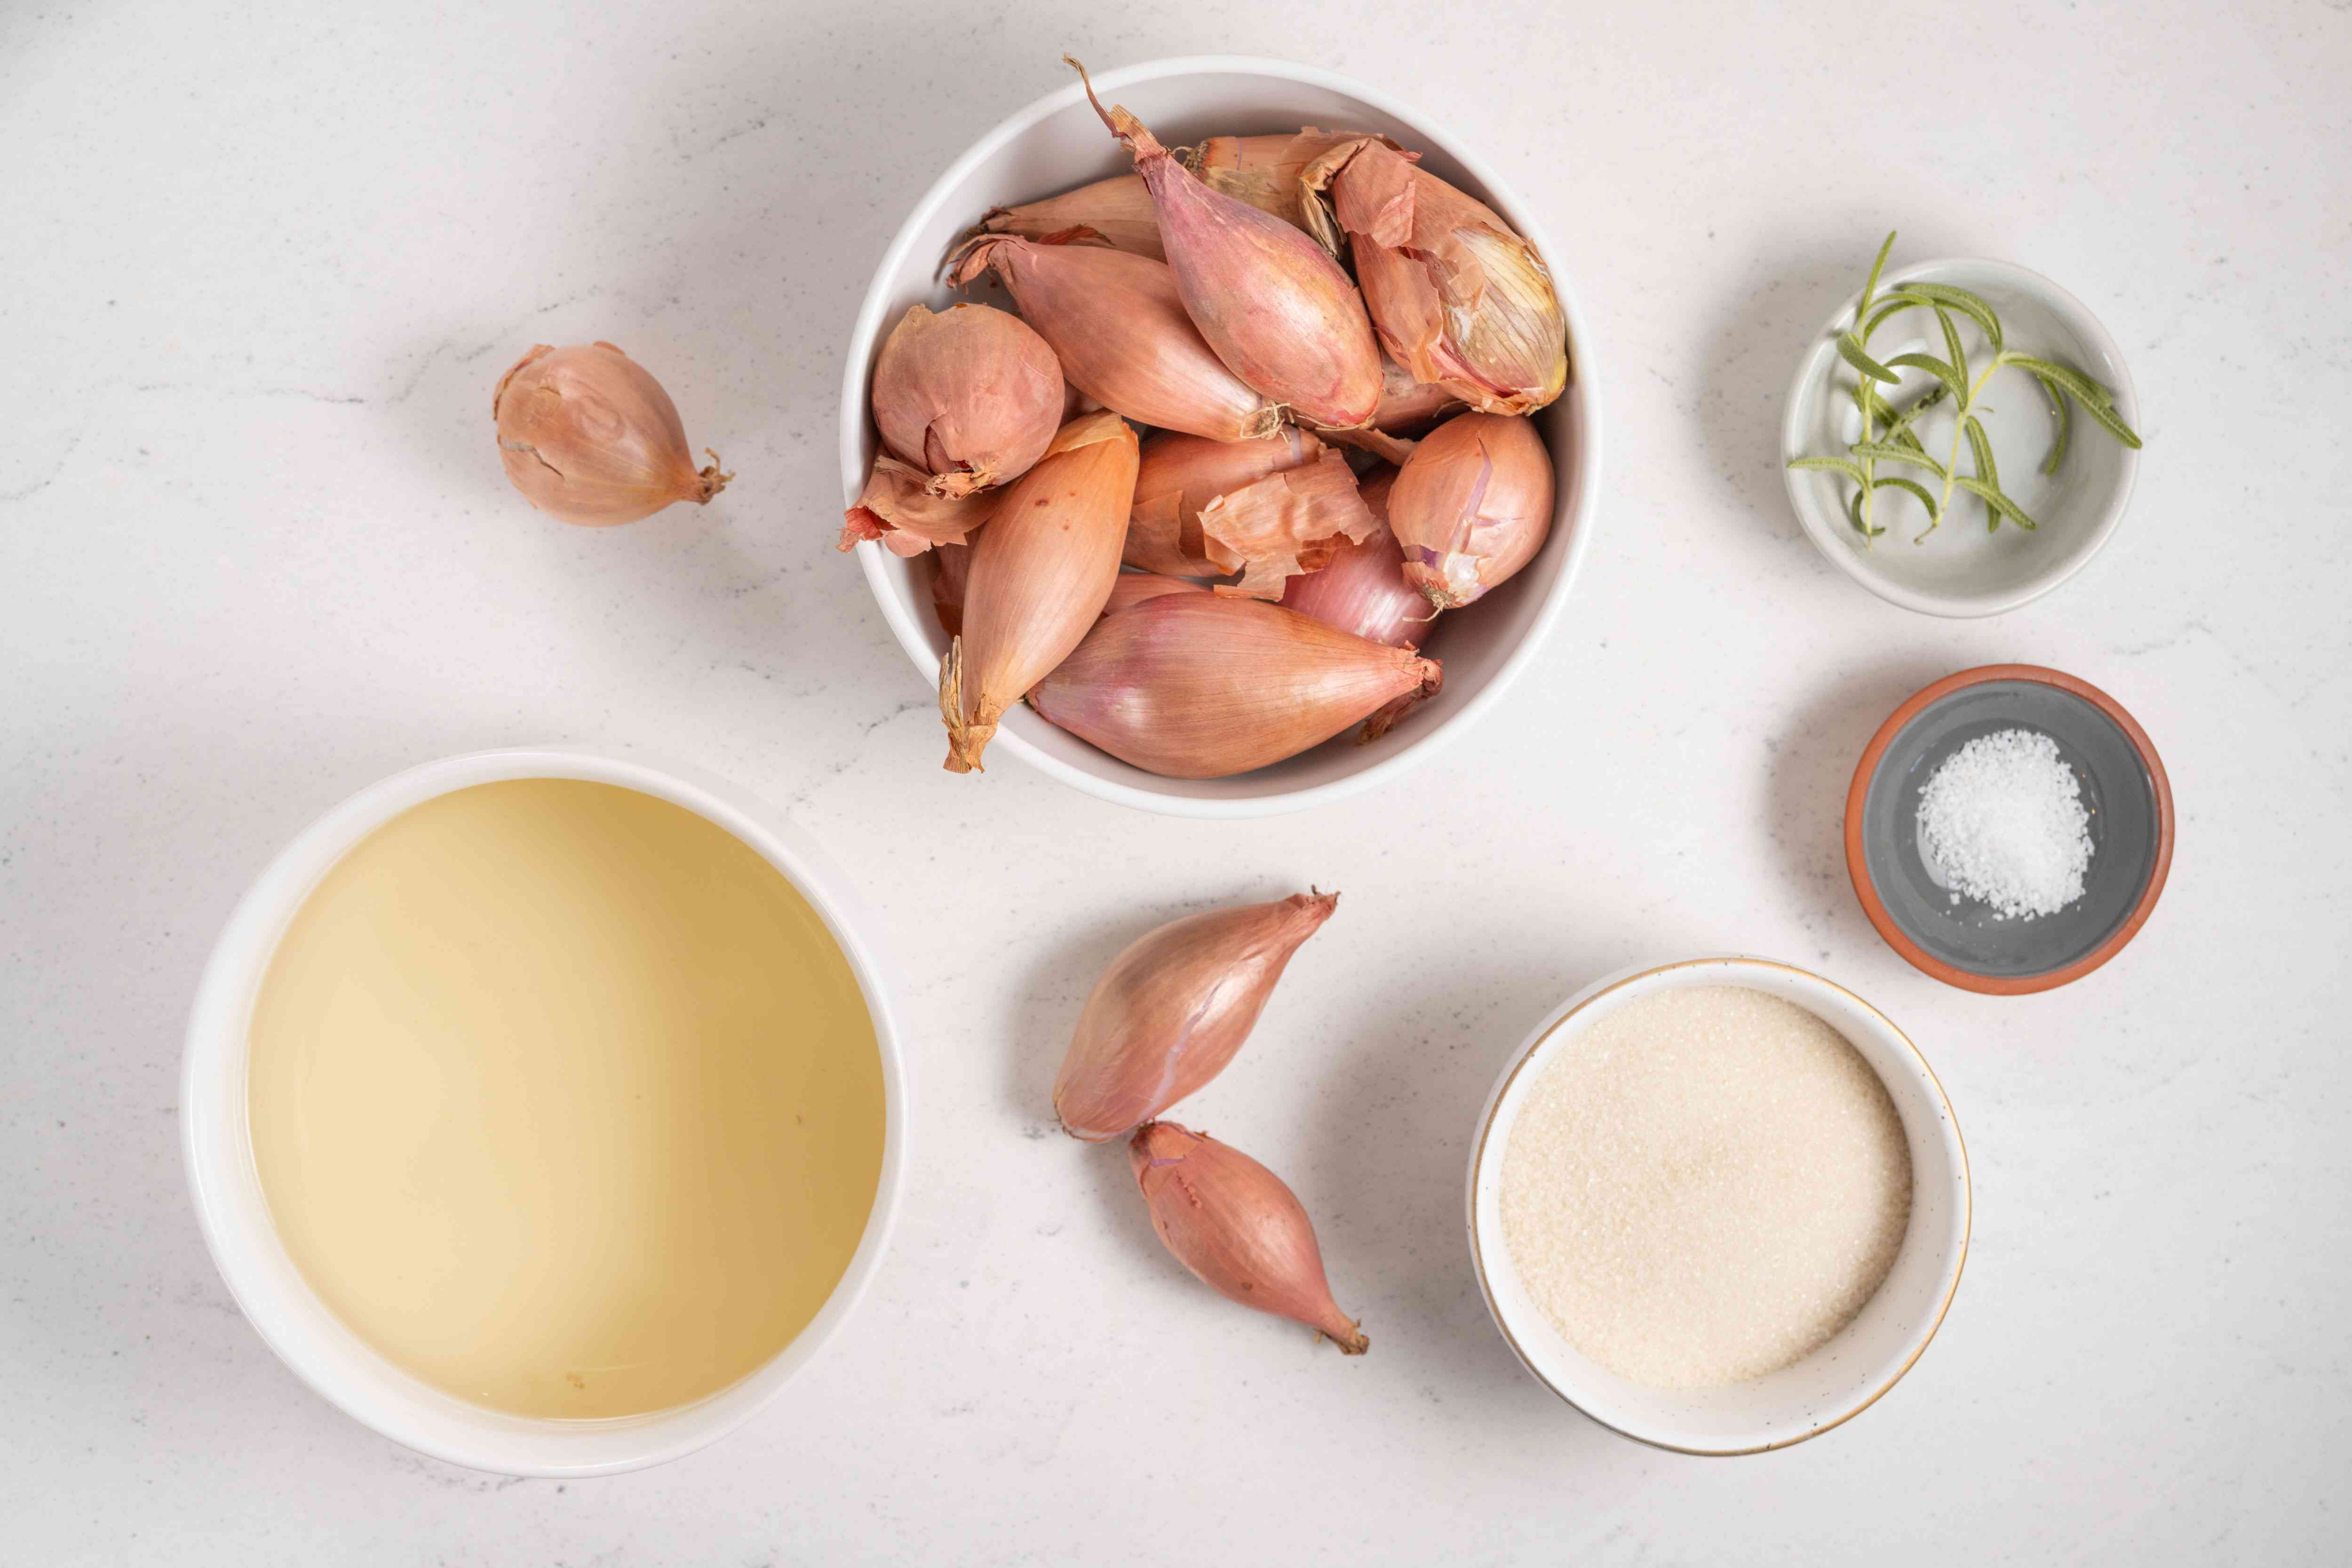 Pickled Shallots ingredients